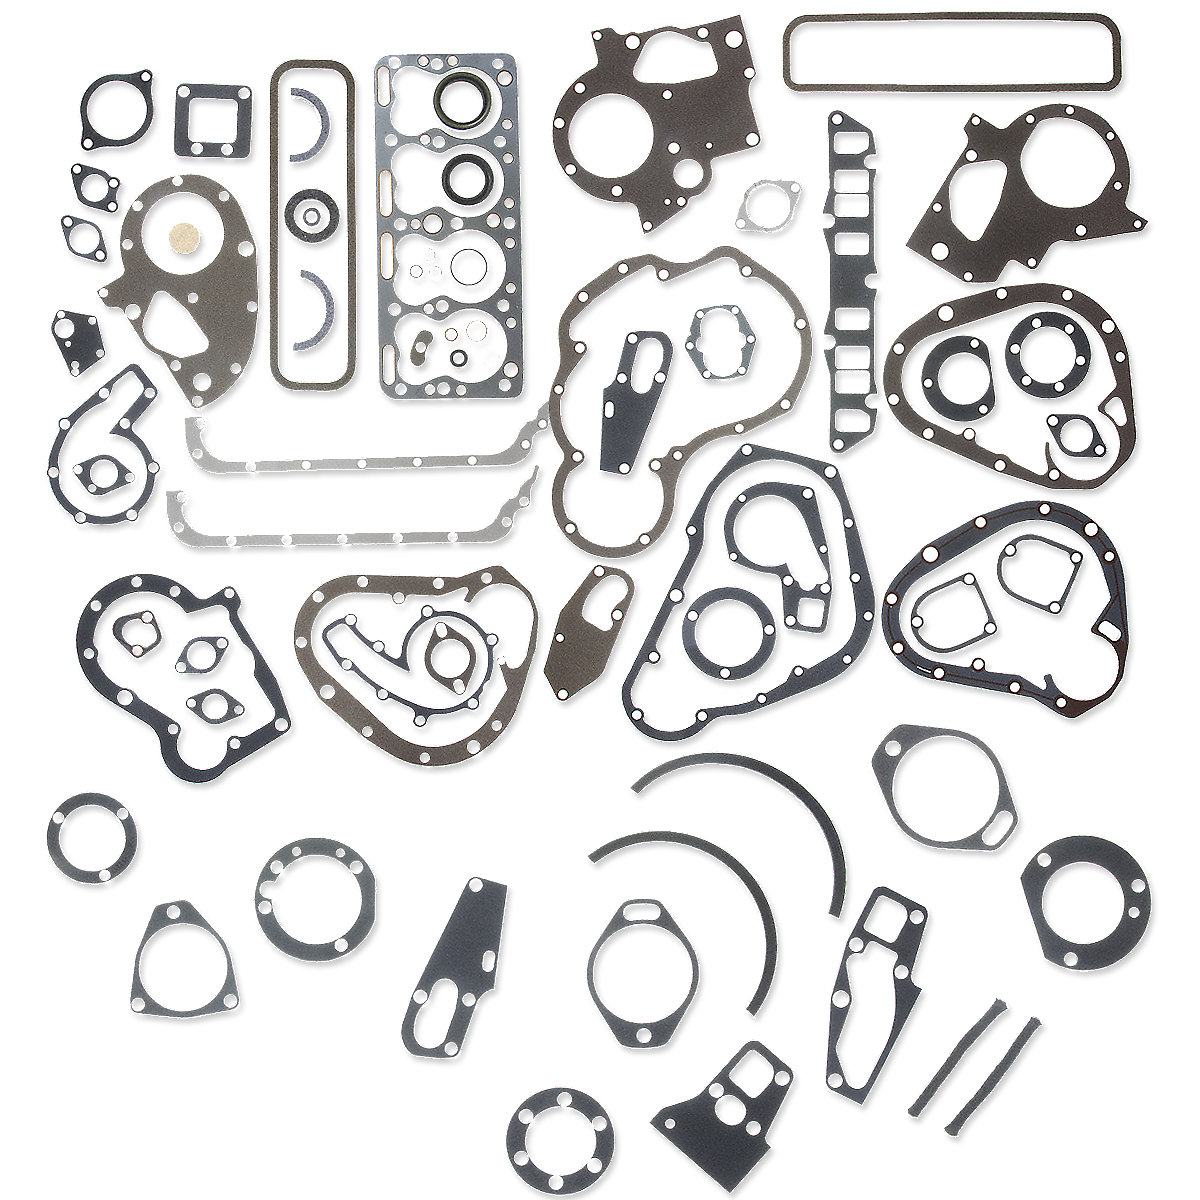 Complete Engine Gasket Set For Massey Harris: Mustang, 101jr, 102jr, 20, 20 Colt, 22, 30, 81, 82.